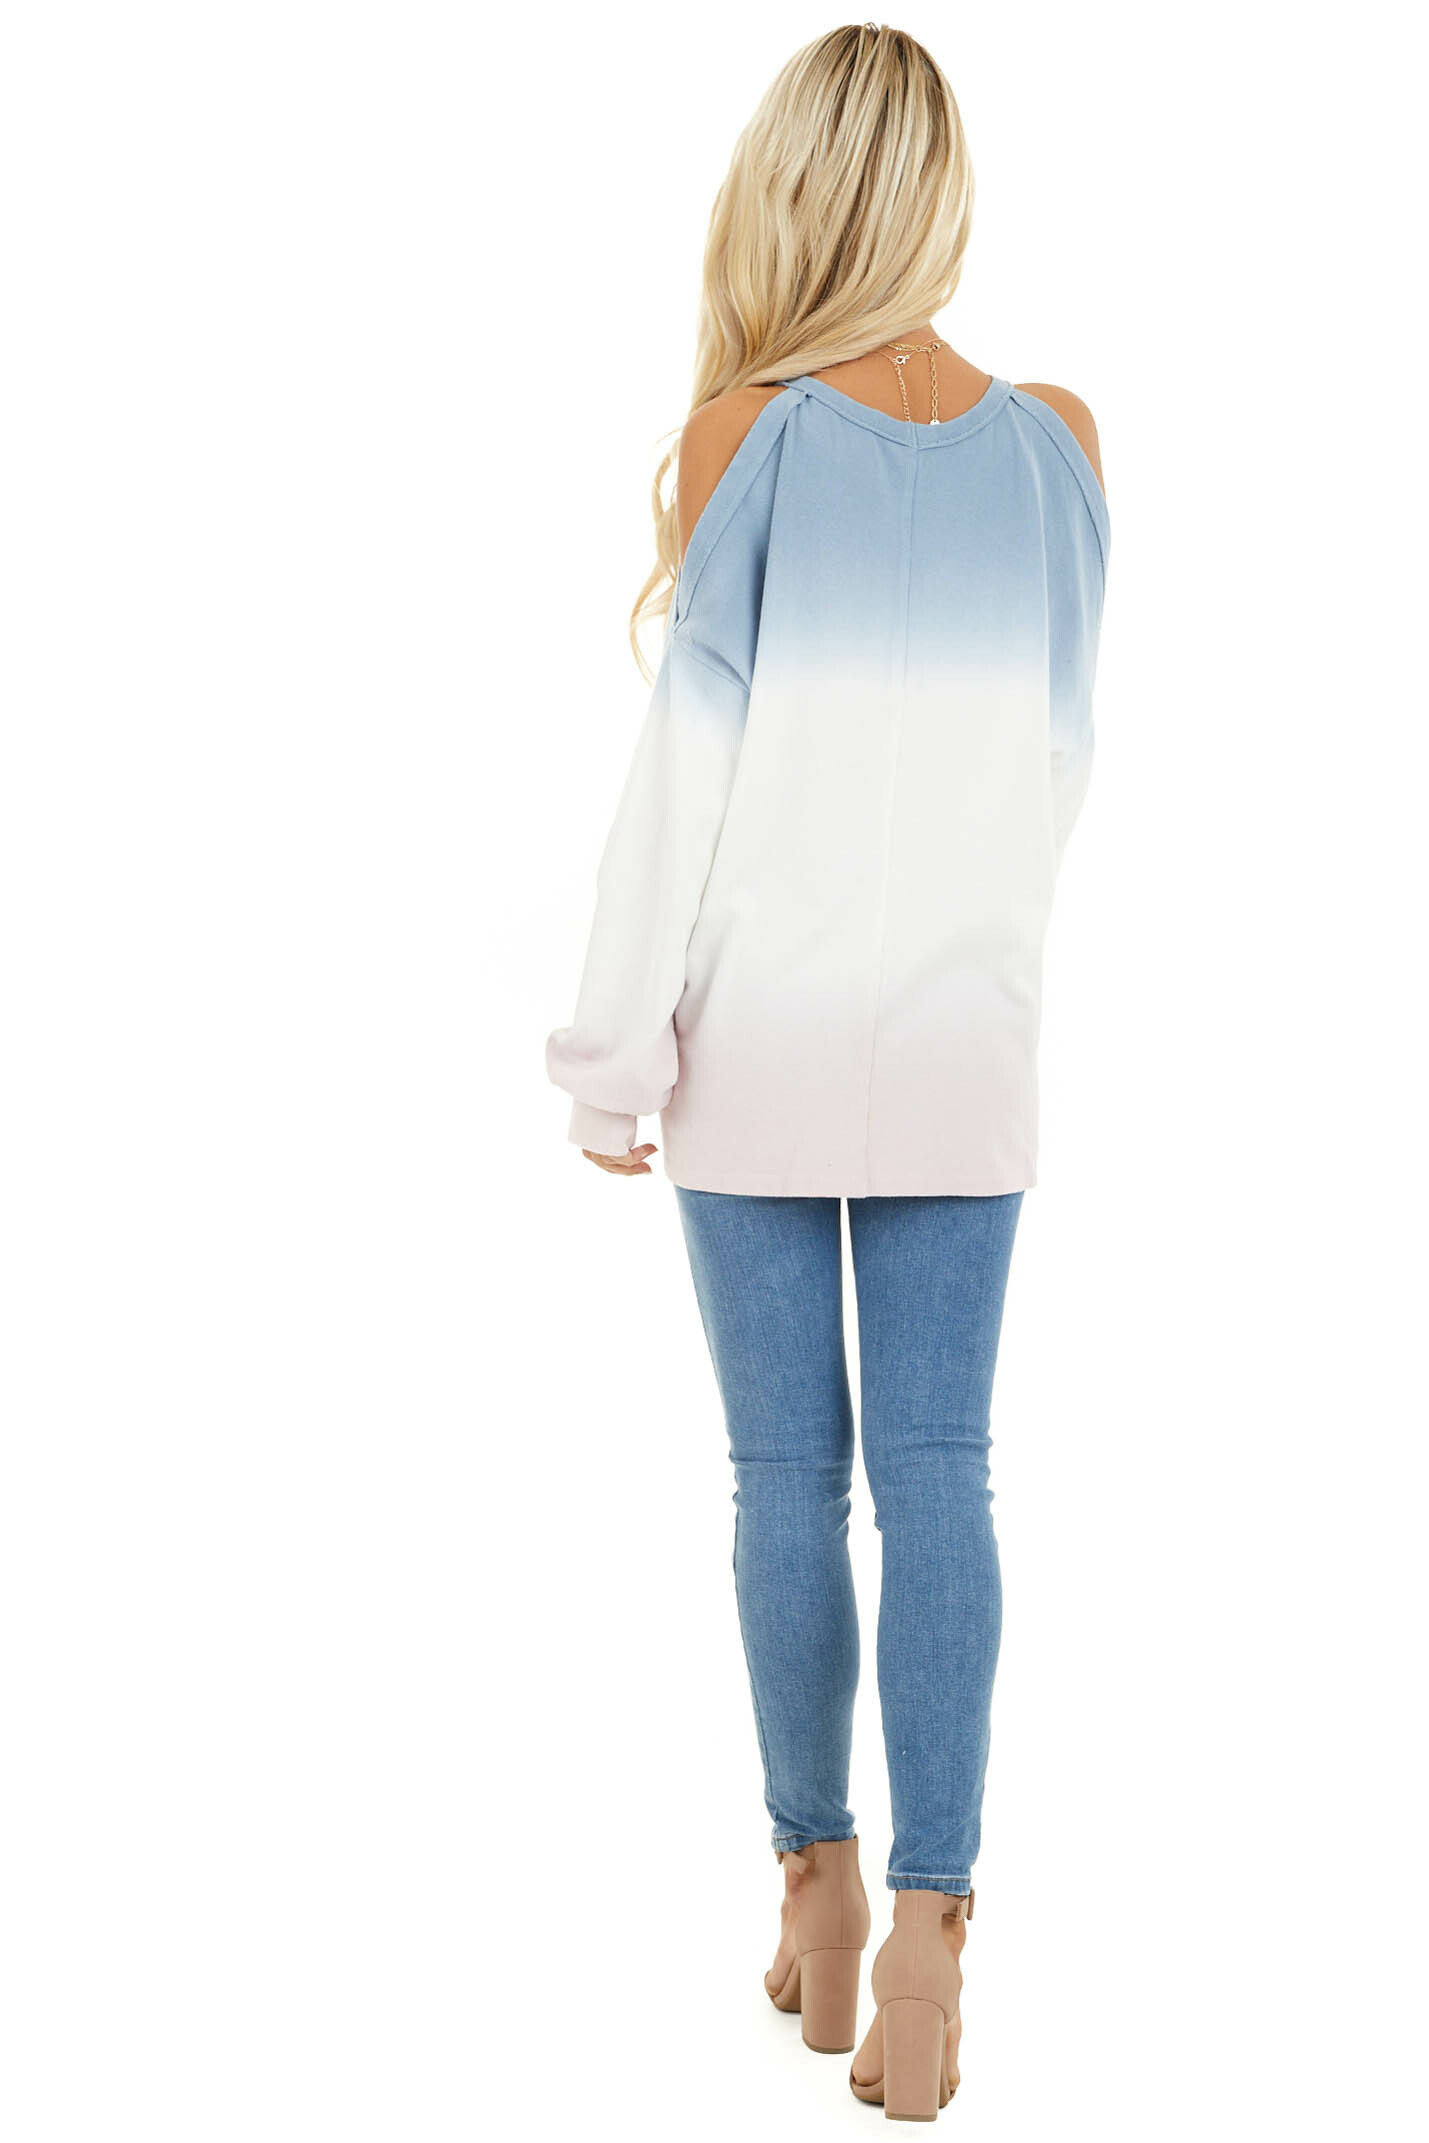 Baby Blue Cold Shoulder Tie Dye Knit Top with Long Sleeves back full body